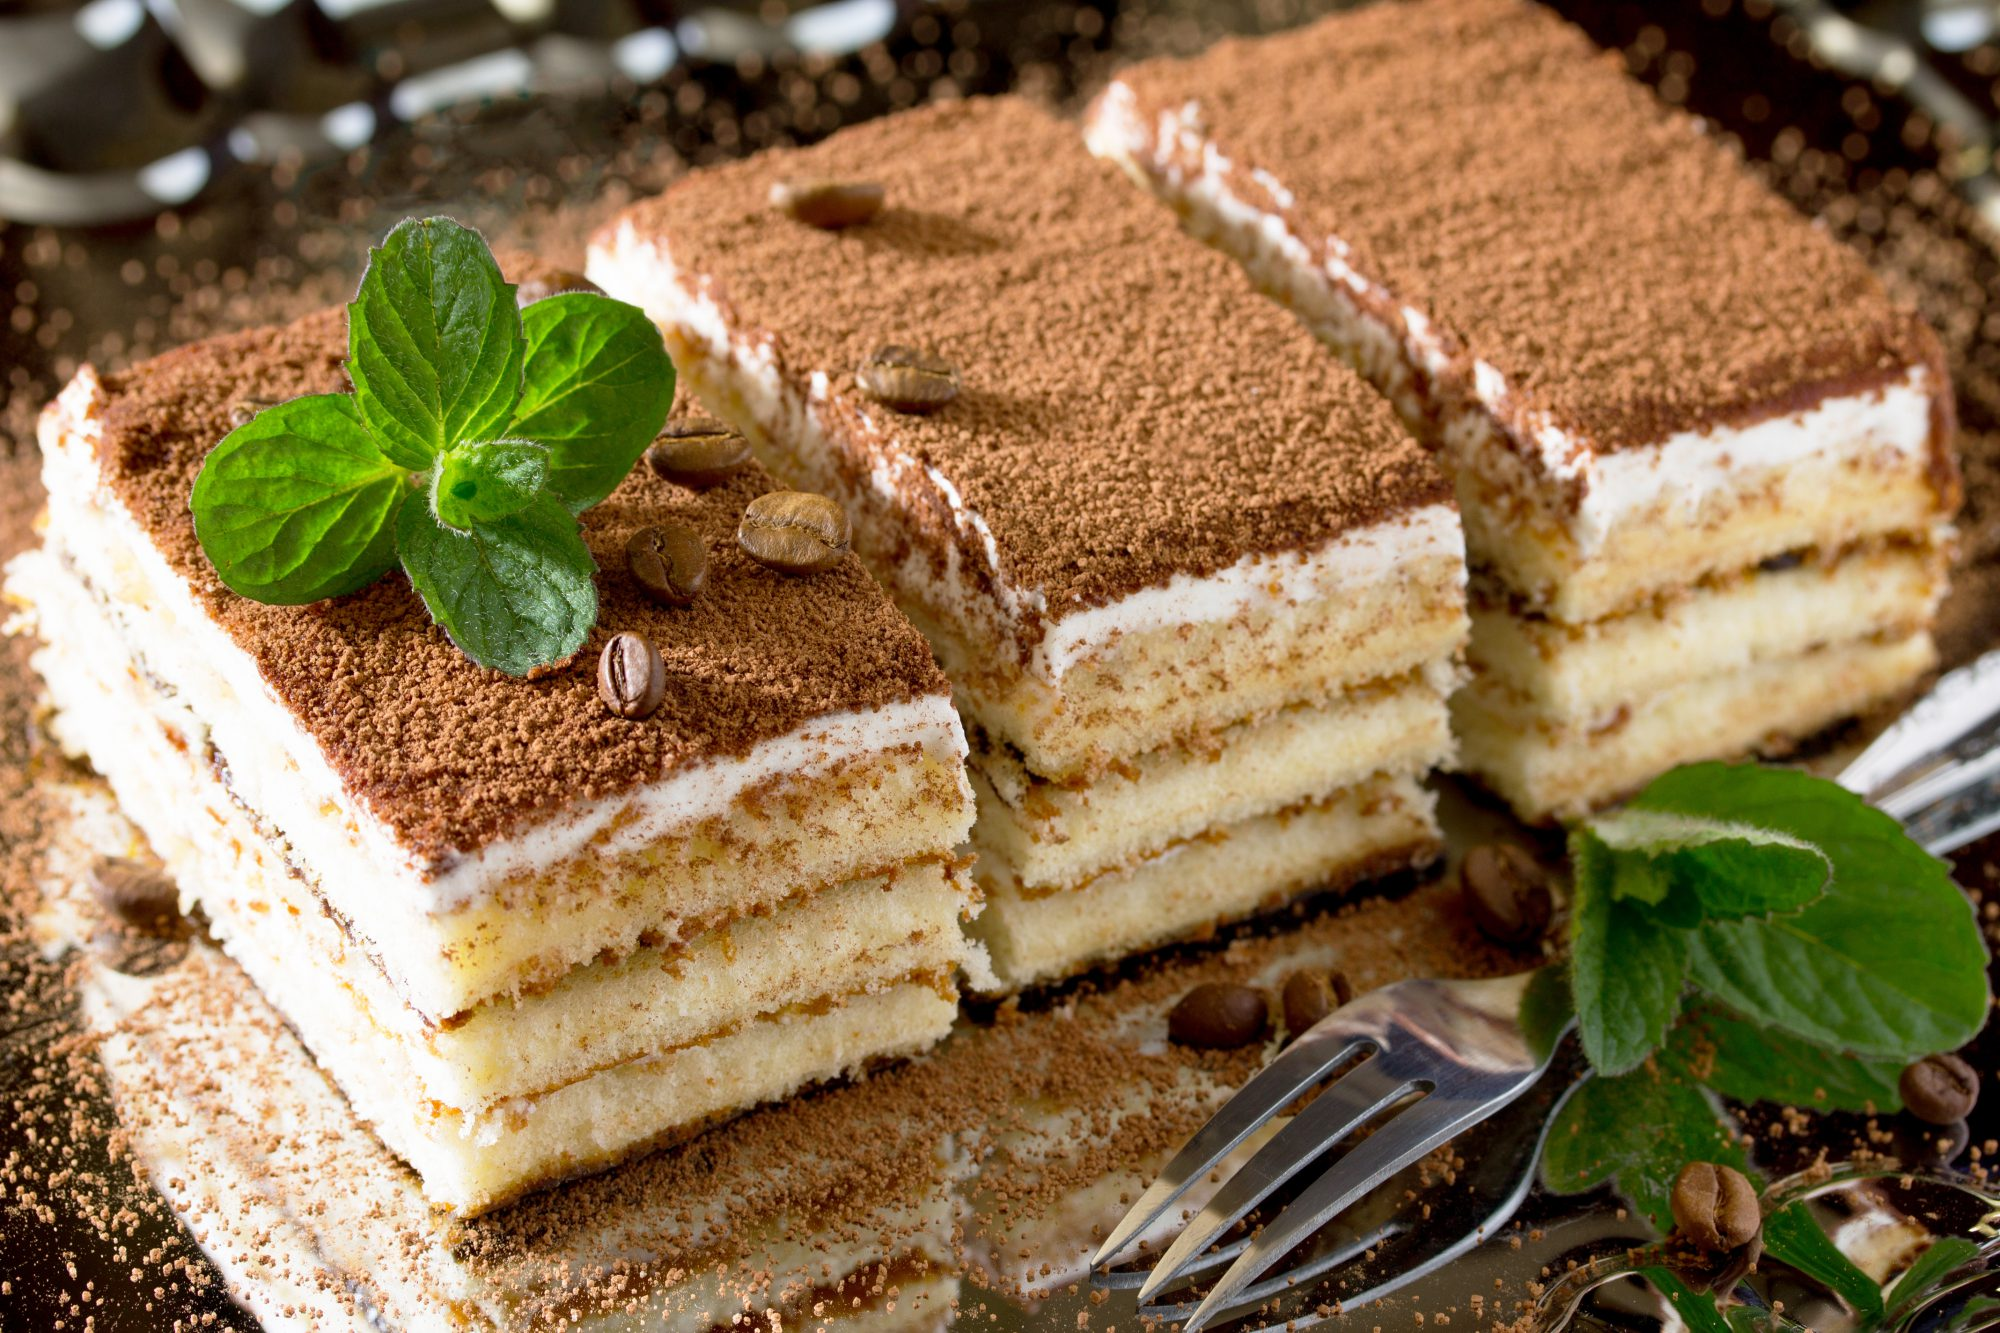 Costco Tiramisu Bar Cake Review